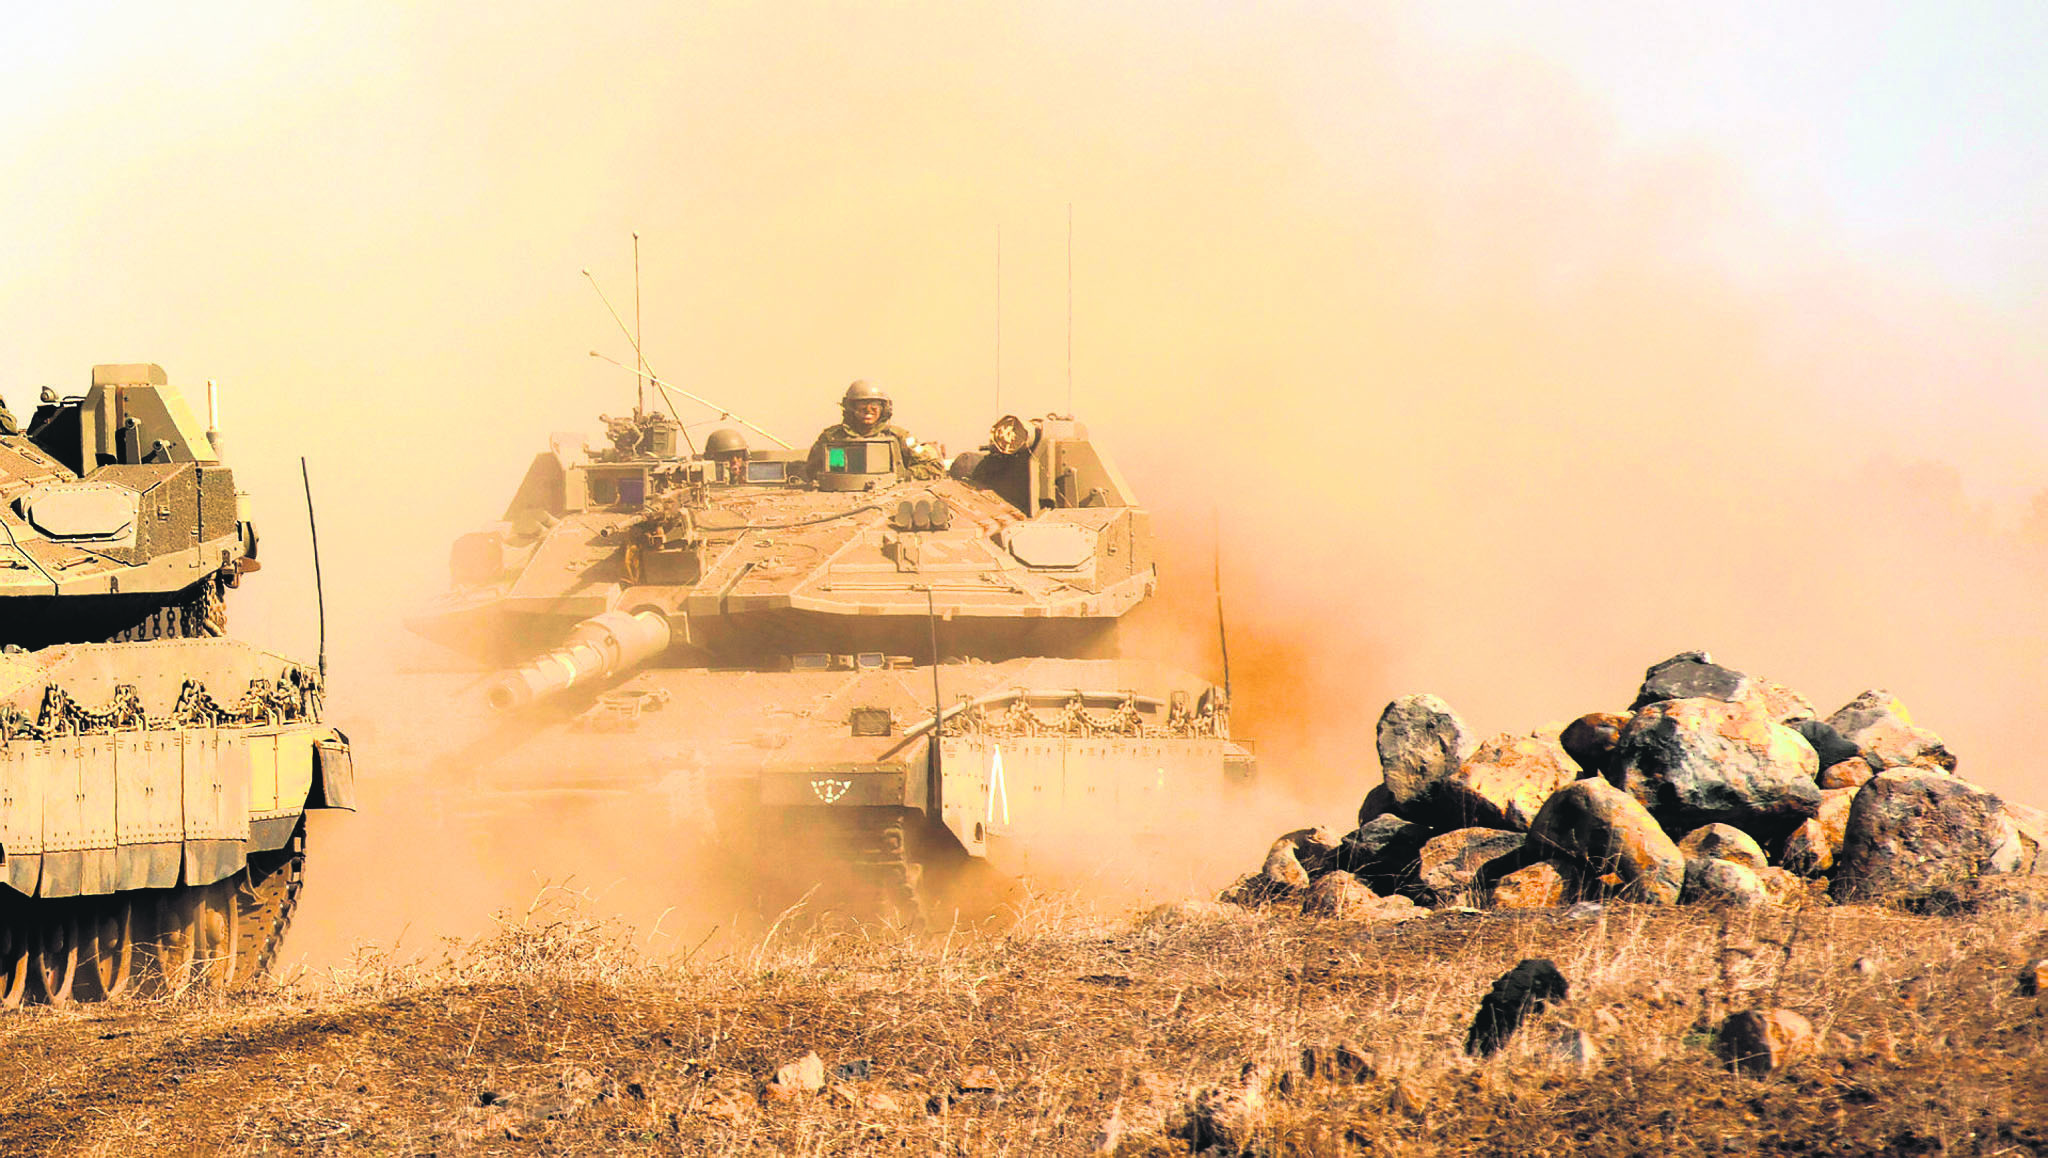 Israeli Merkava tanks take part in the second day of a large military training exercise in the Golan Heights, near the Israeli-Syrian border, Nov. 20.